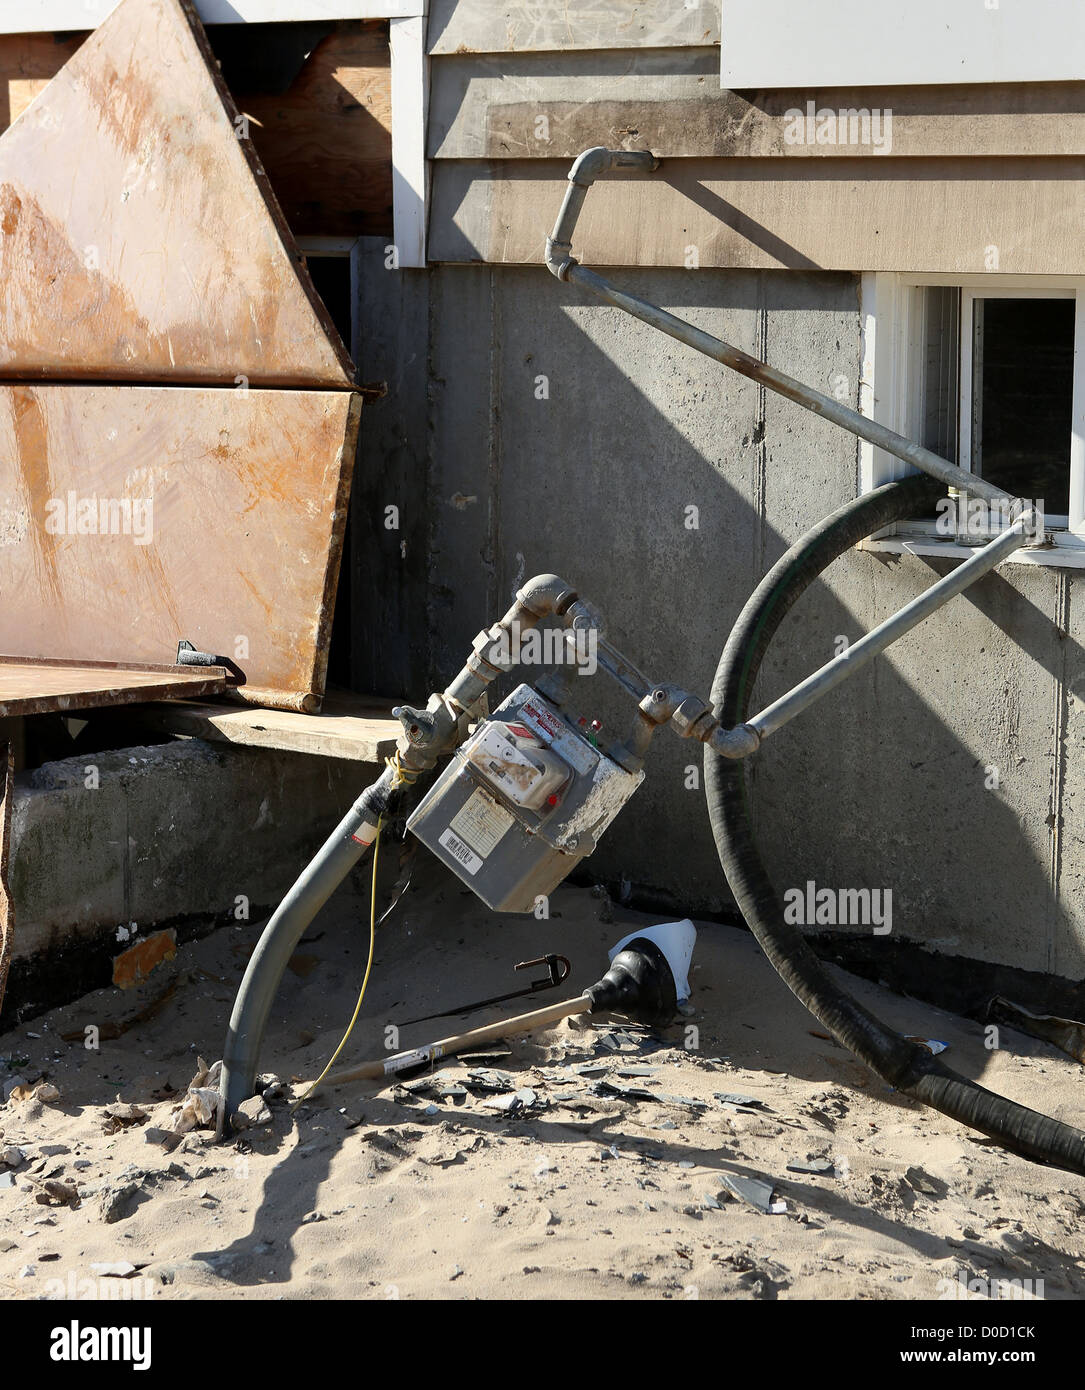 A gas meter on a home in Breezy Point, NY damaged by Tropical Storm Sandy waits repair November 21, 2012.FEMA is - Stock Image